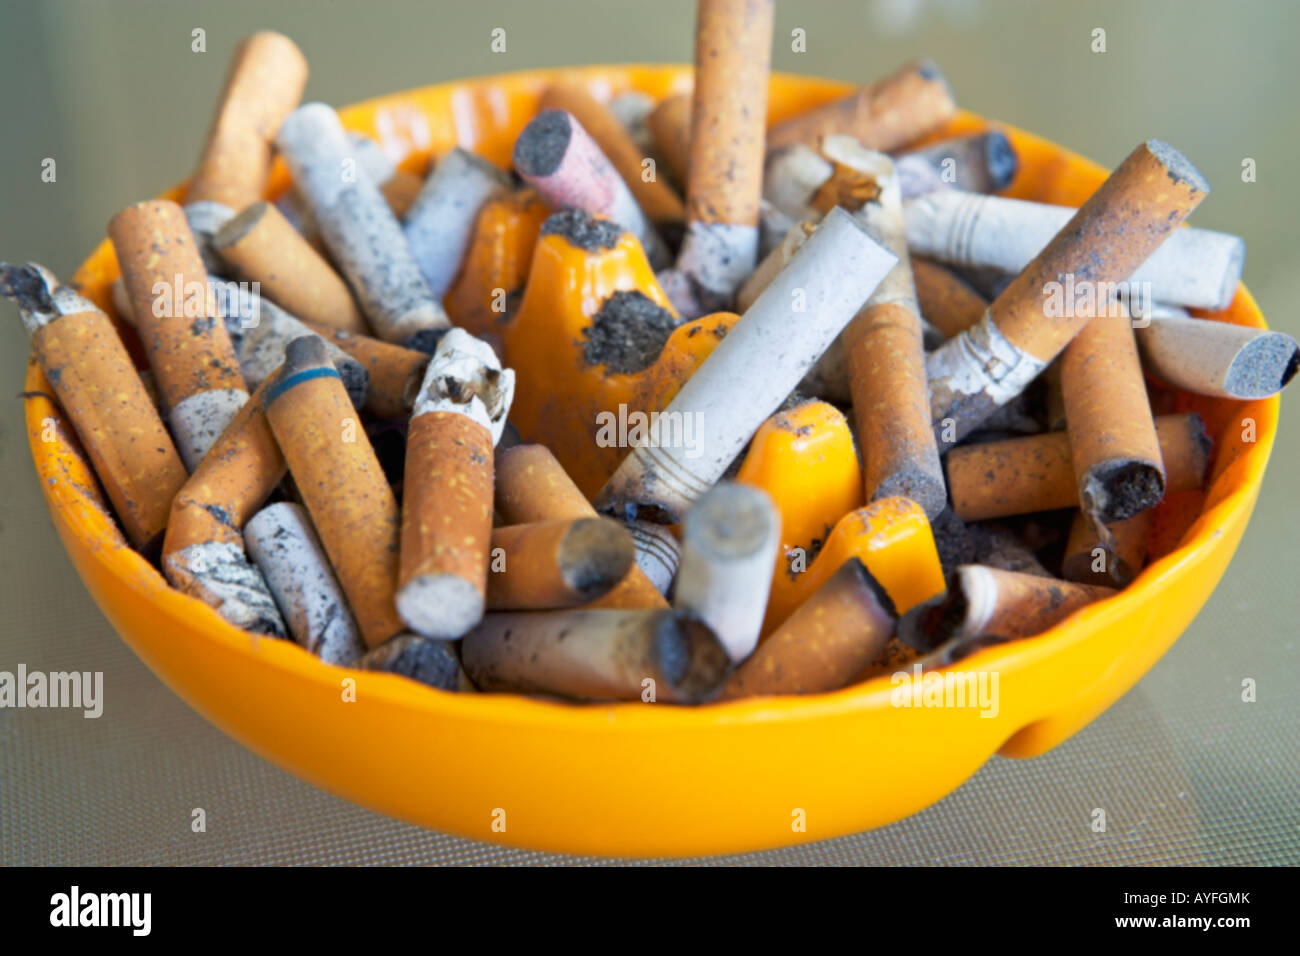 ashtray filled with many cigarette butts - Stock Image